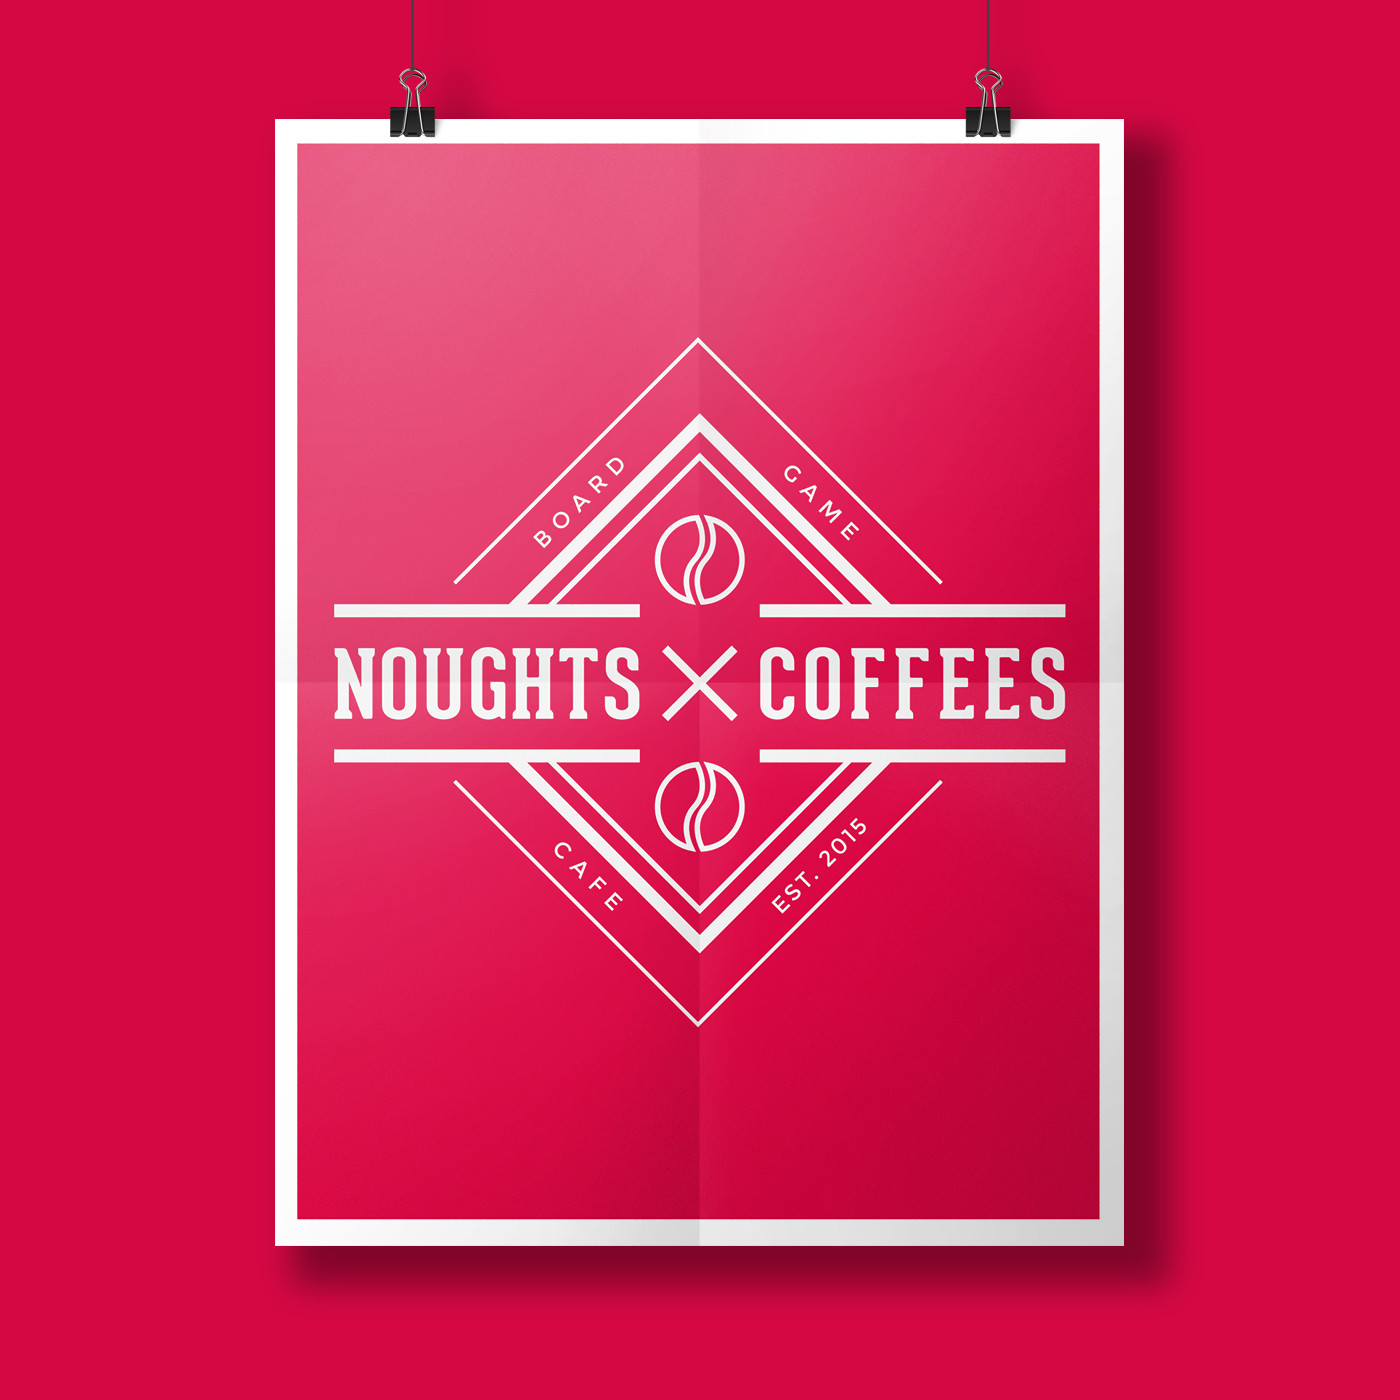 noughts and coffees poster